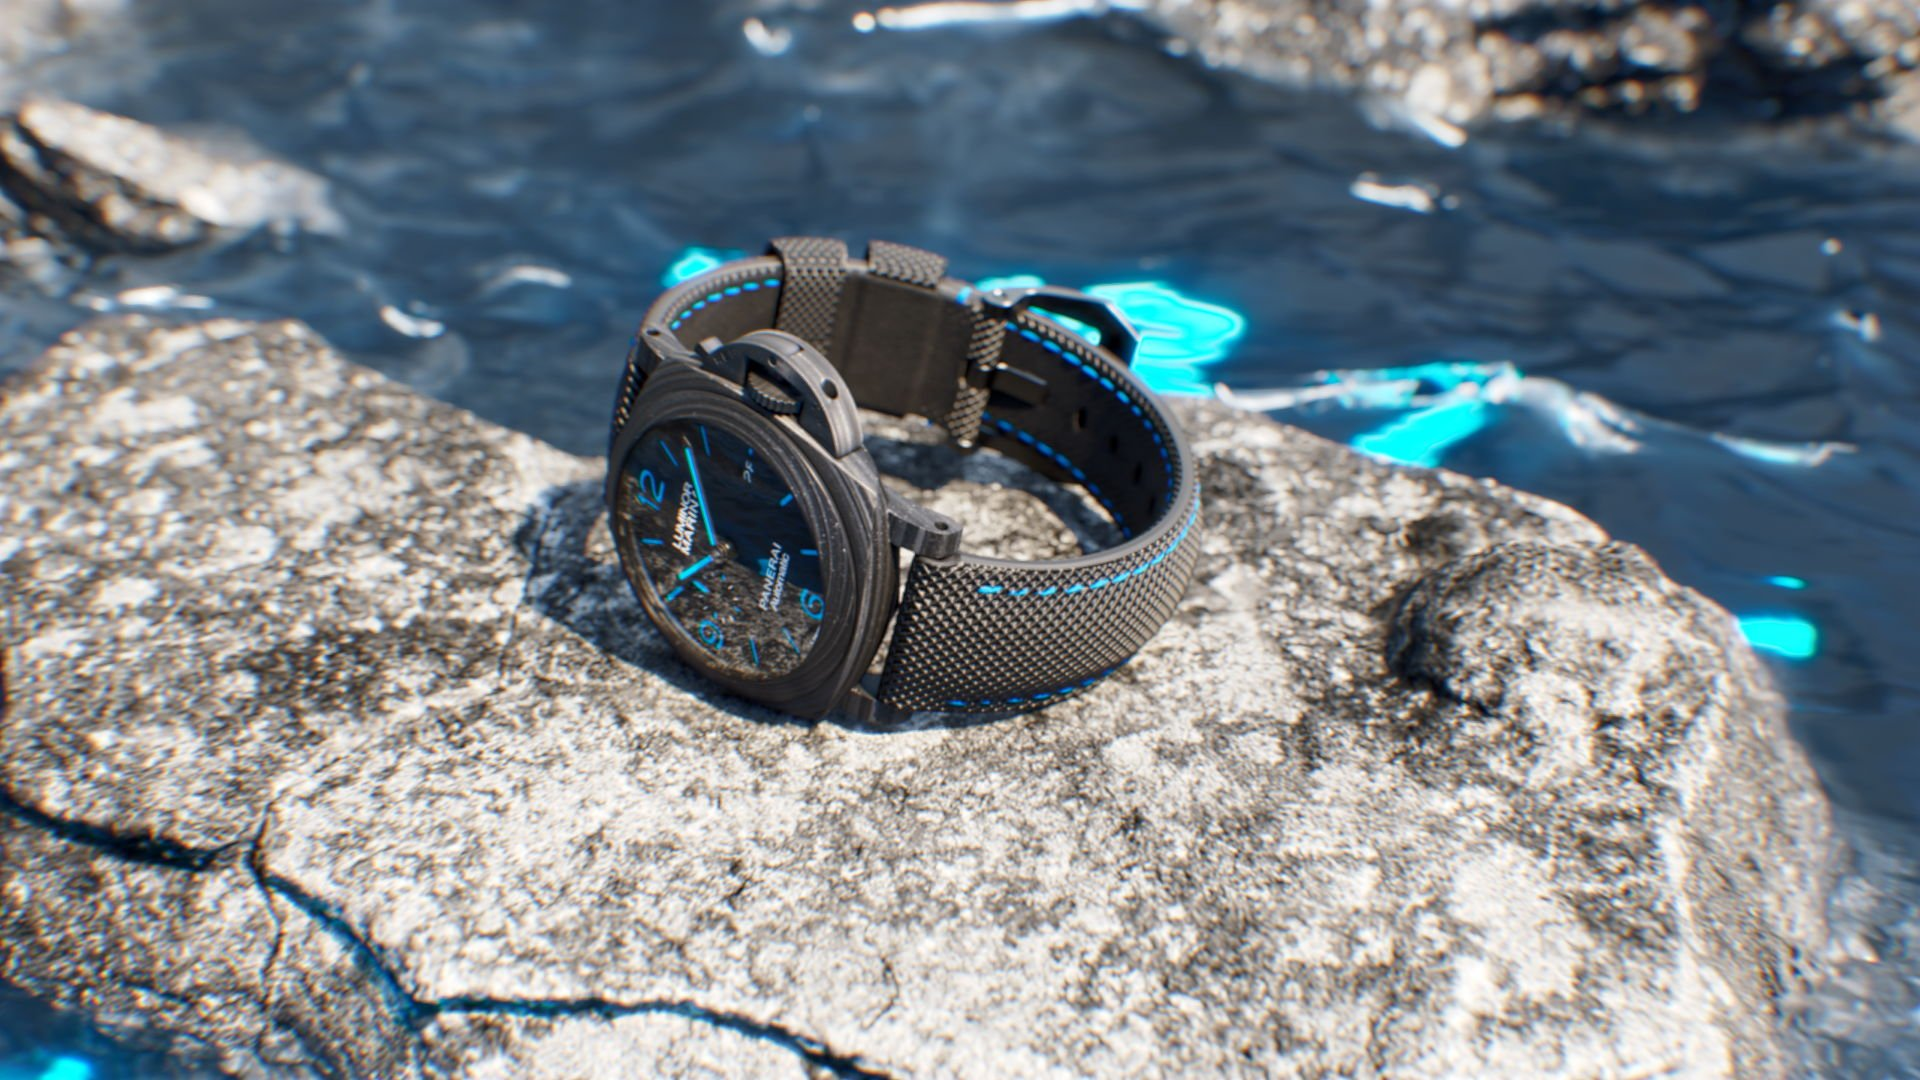 Luminor Marina Carbotech Straps